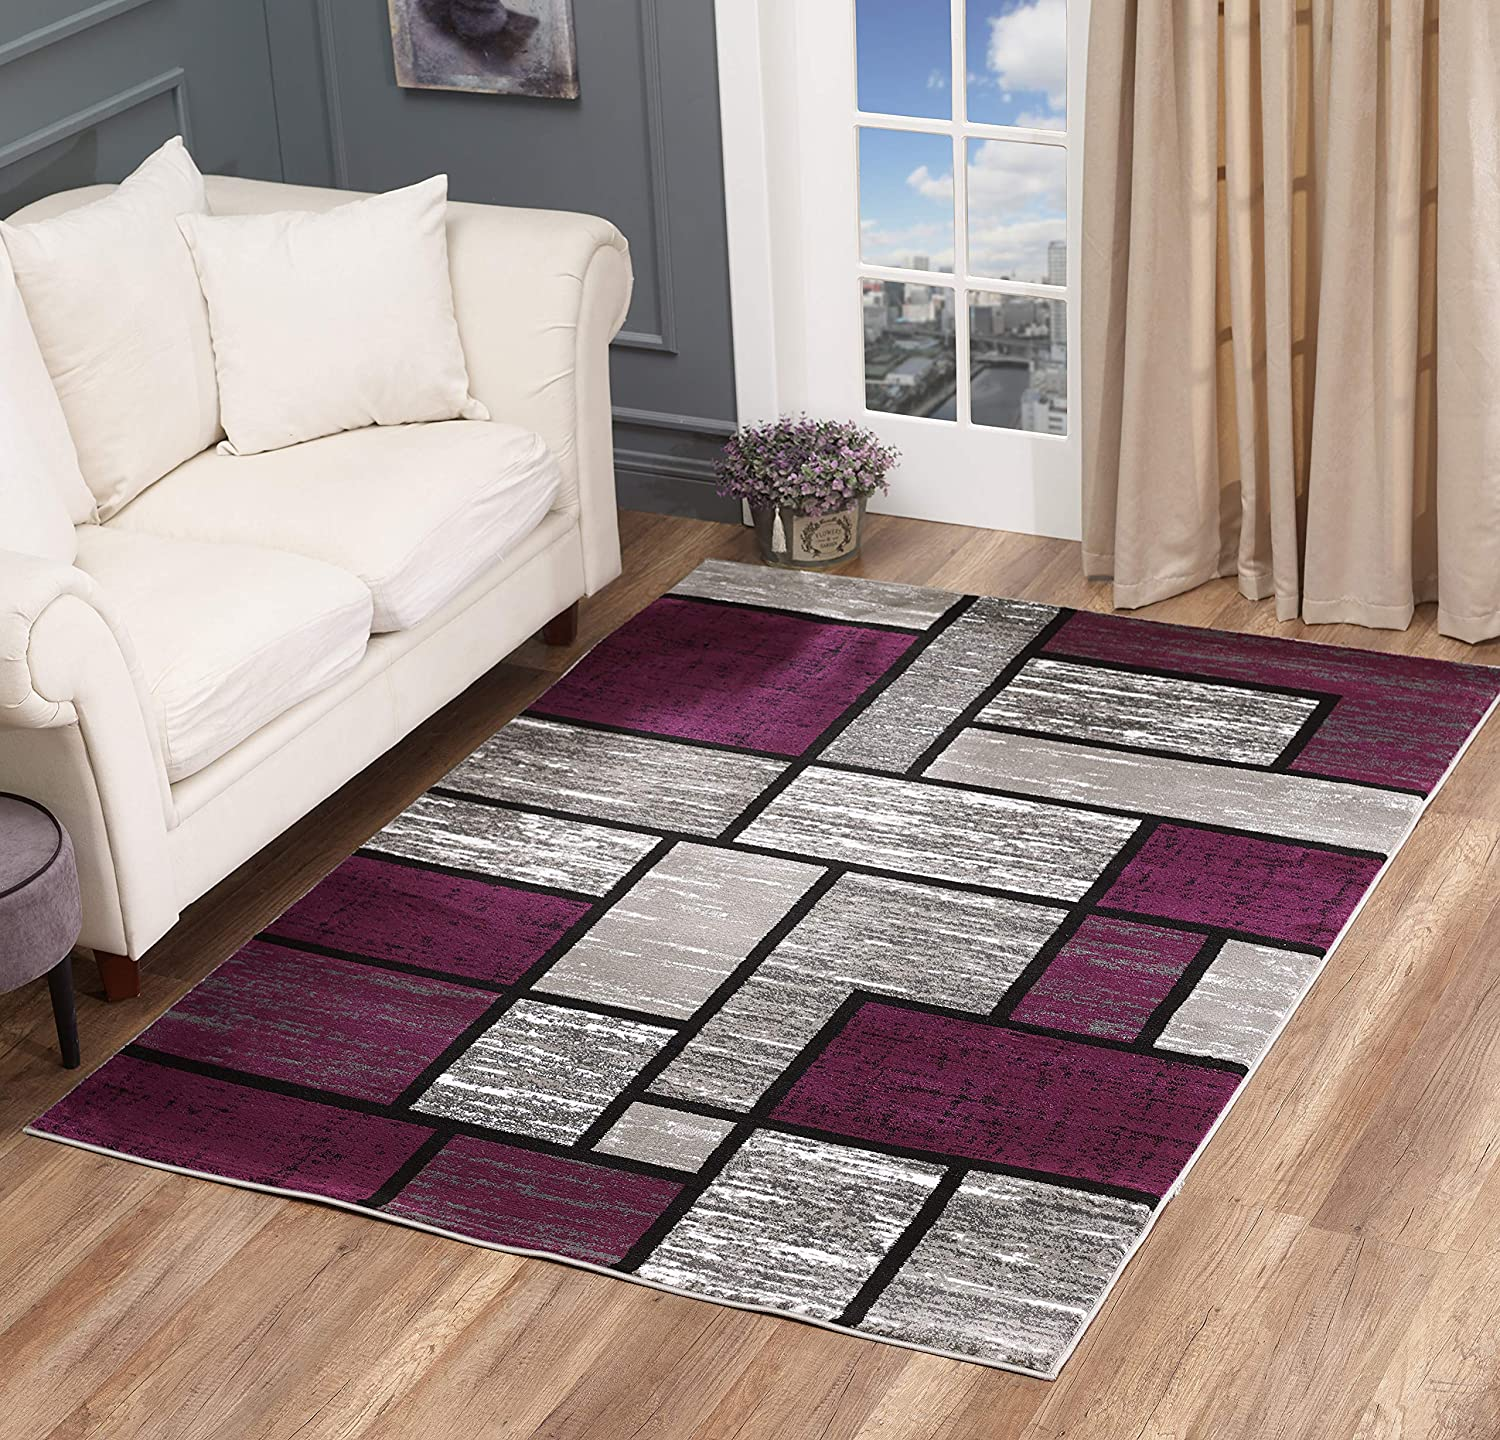 Glory Rugs Max 56% OFF Area Rug High order Abstract Modern Grey Carp Black Purple Boxes